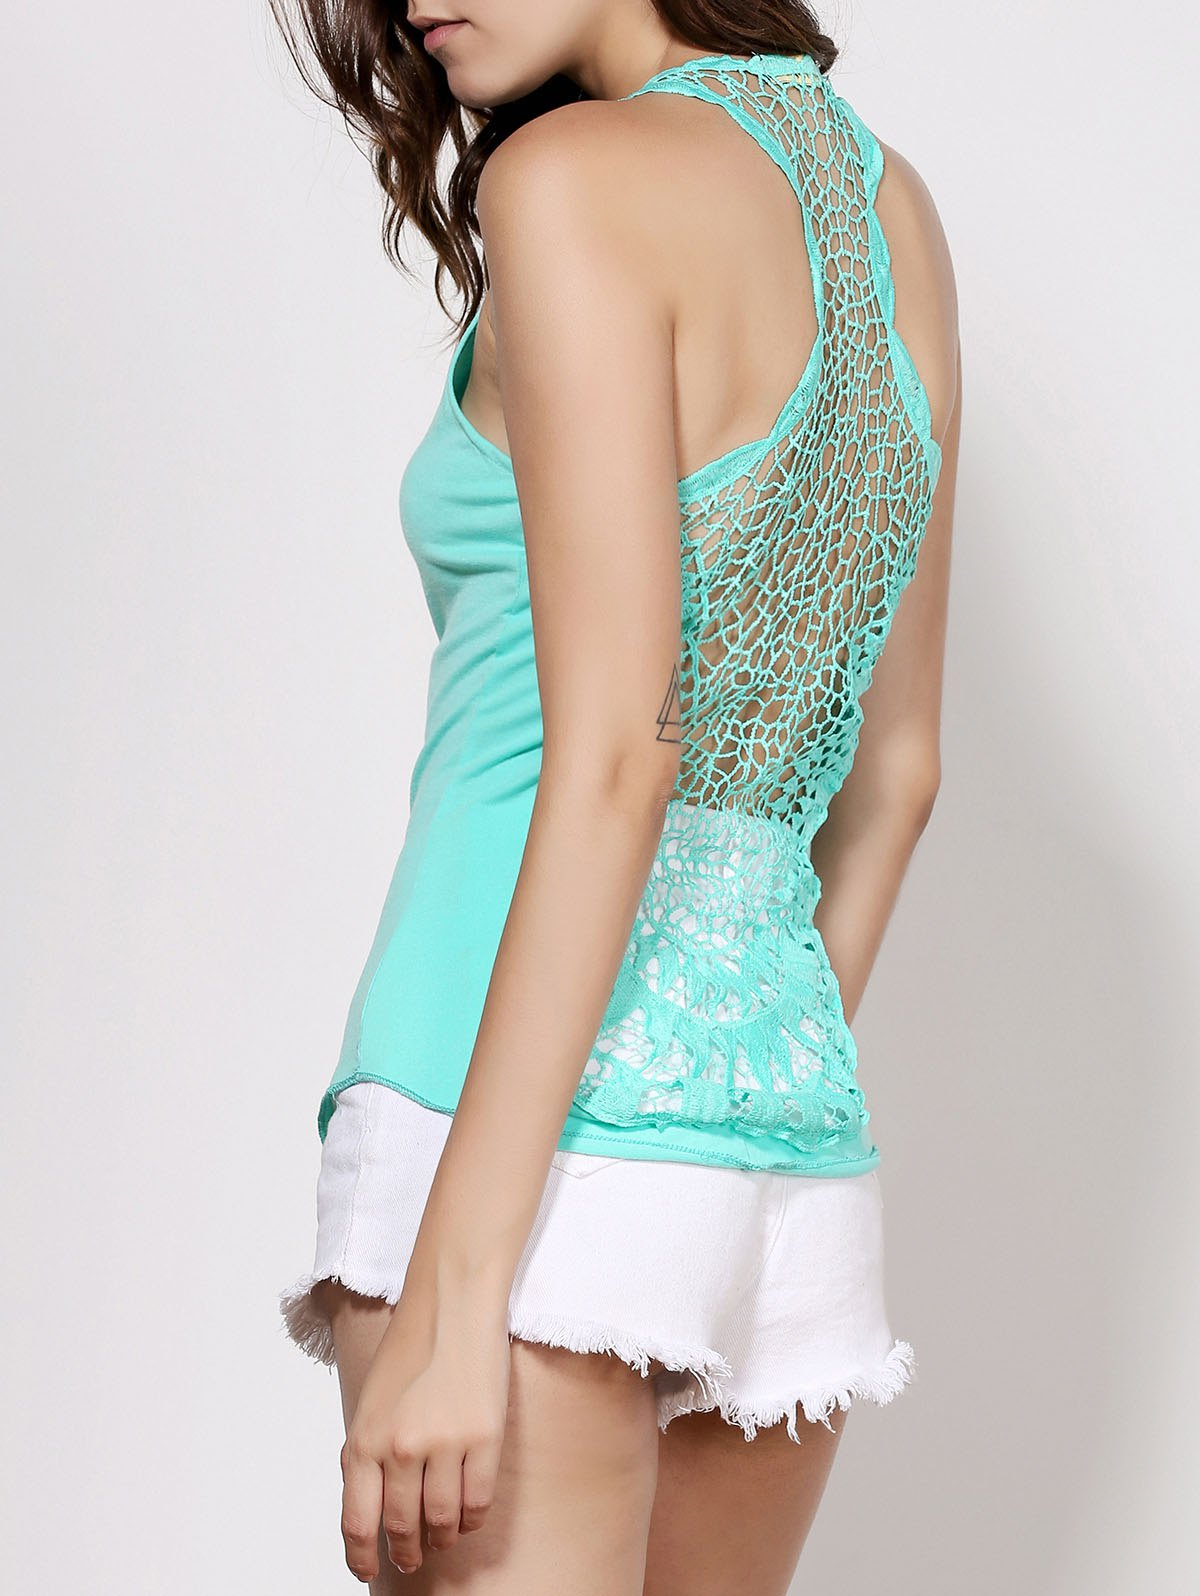 Endearing Round Neck Cut Out Lace Spliced Tank Top For Women - TIFFANY BLUE ONE SIZE(FIT SIZE XS TO M)